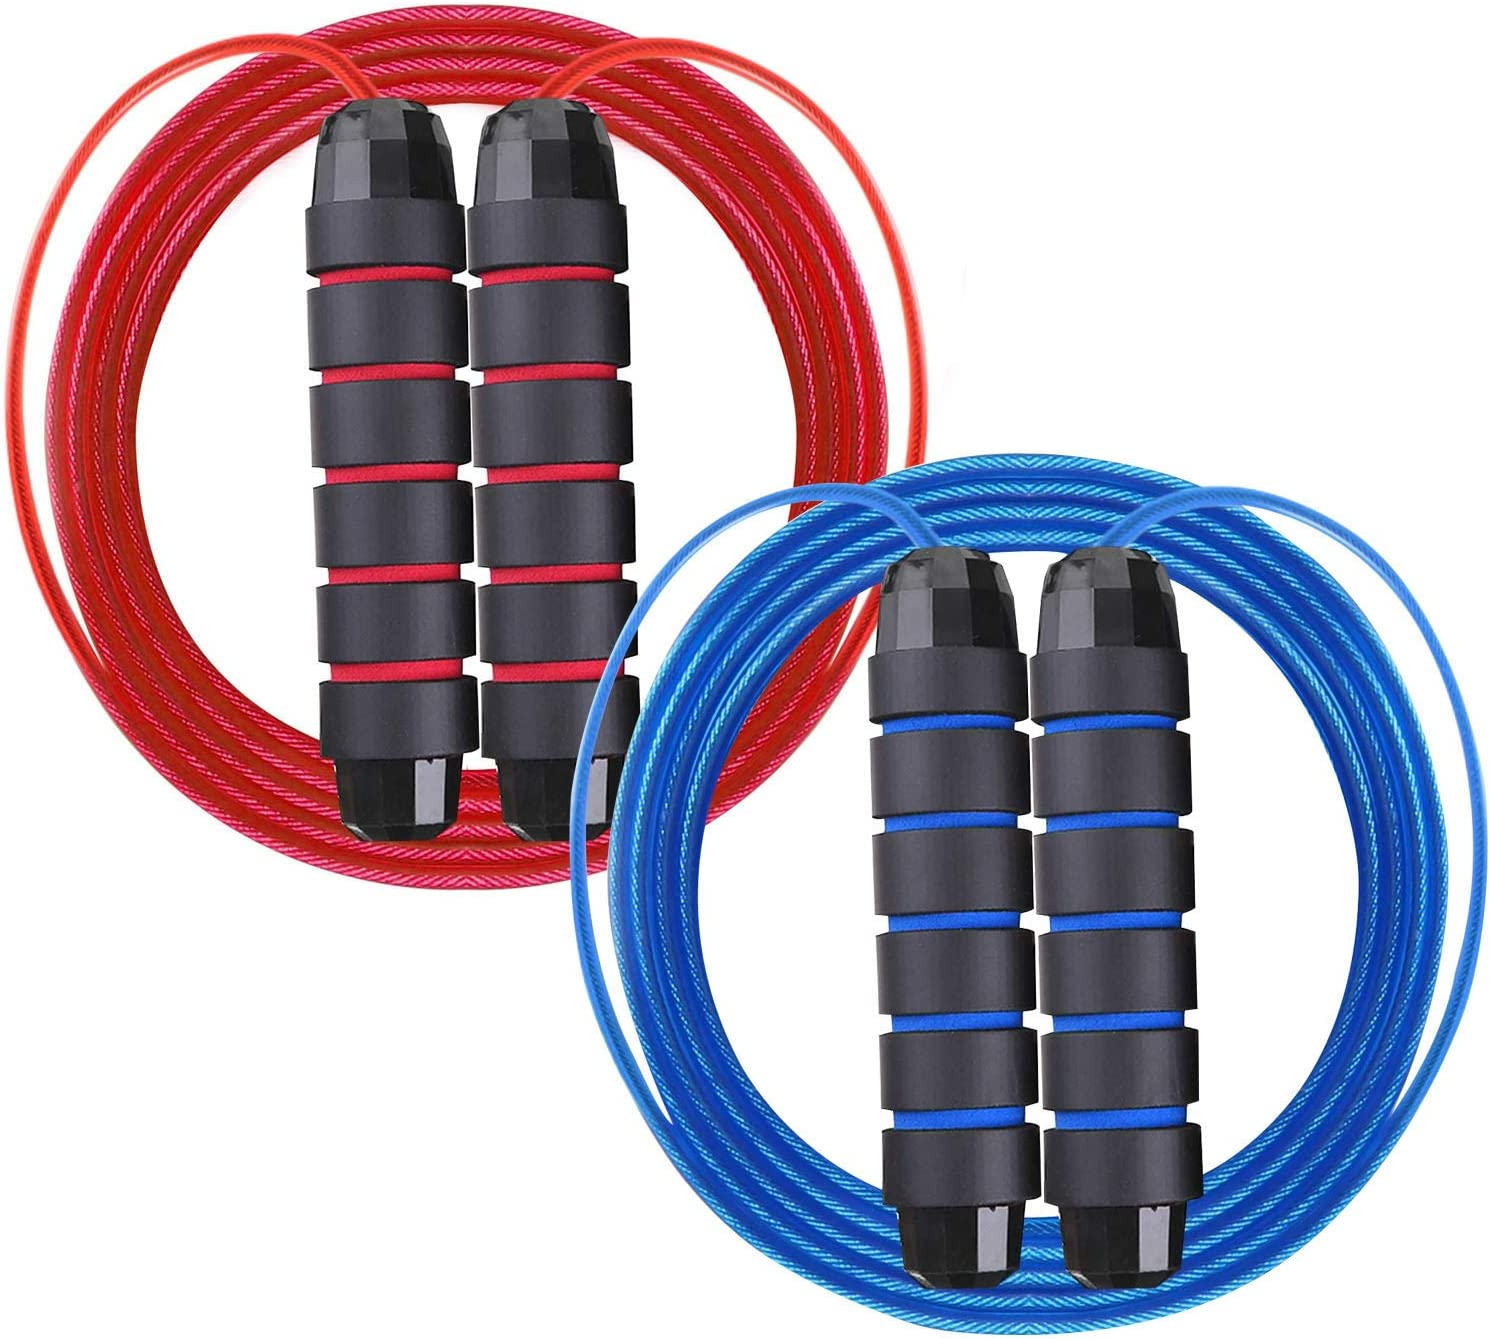 Black Ball Bearings Tangle-Free Adjustable Skipping Rope Adults for Endurance Training Fitness Speed Rope Jump Rope 3 Meters Long Etmury Skipping Rope